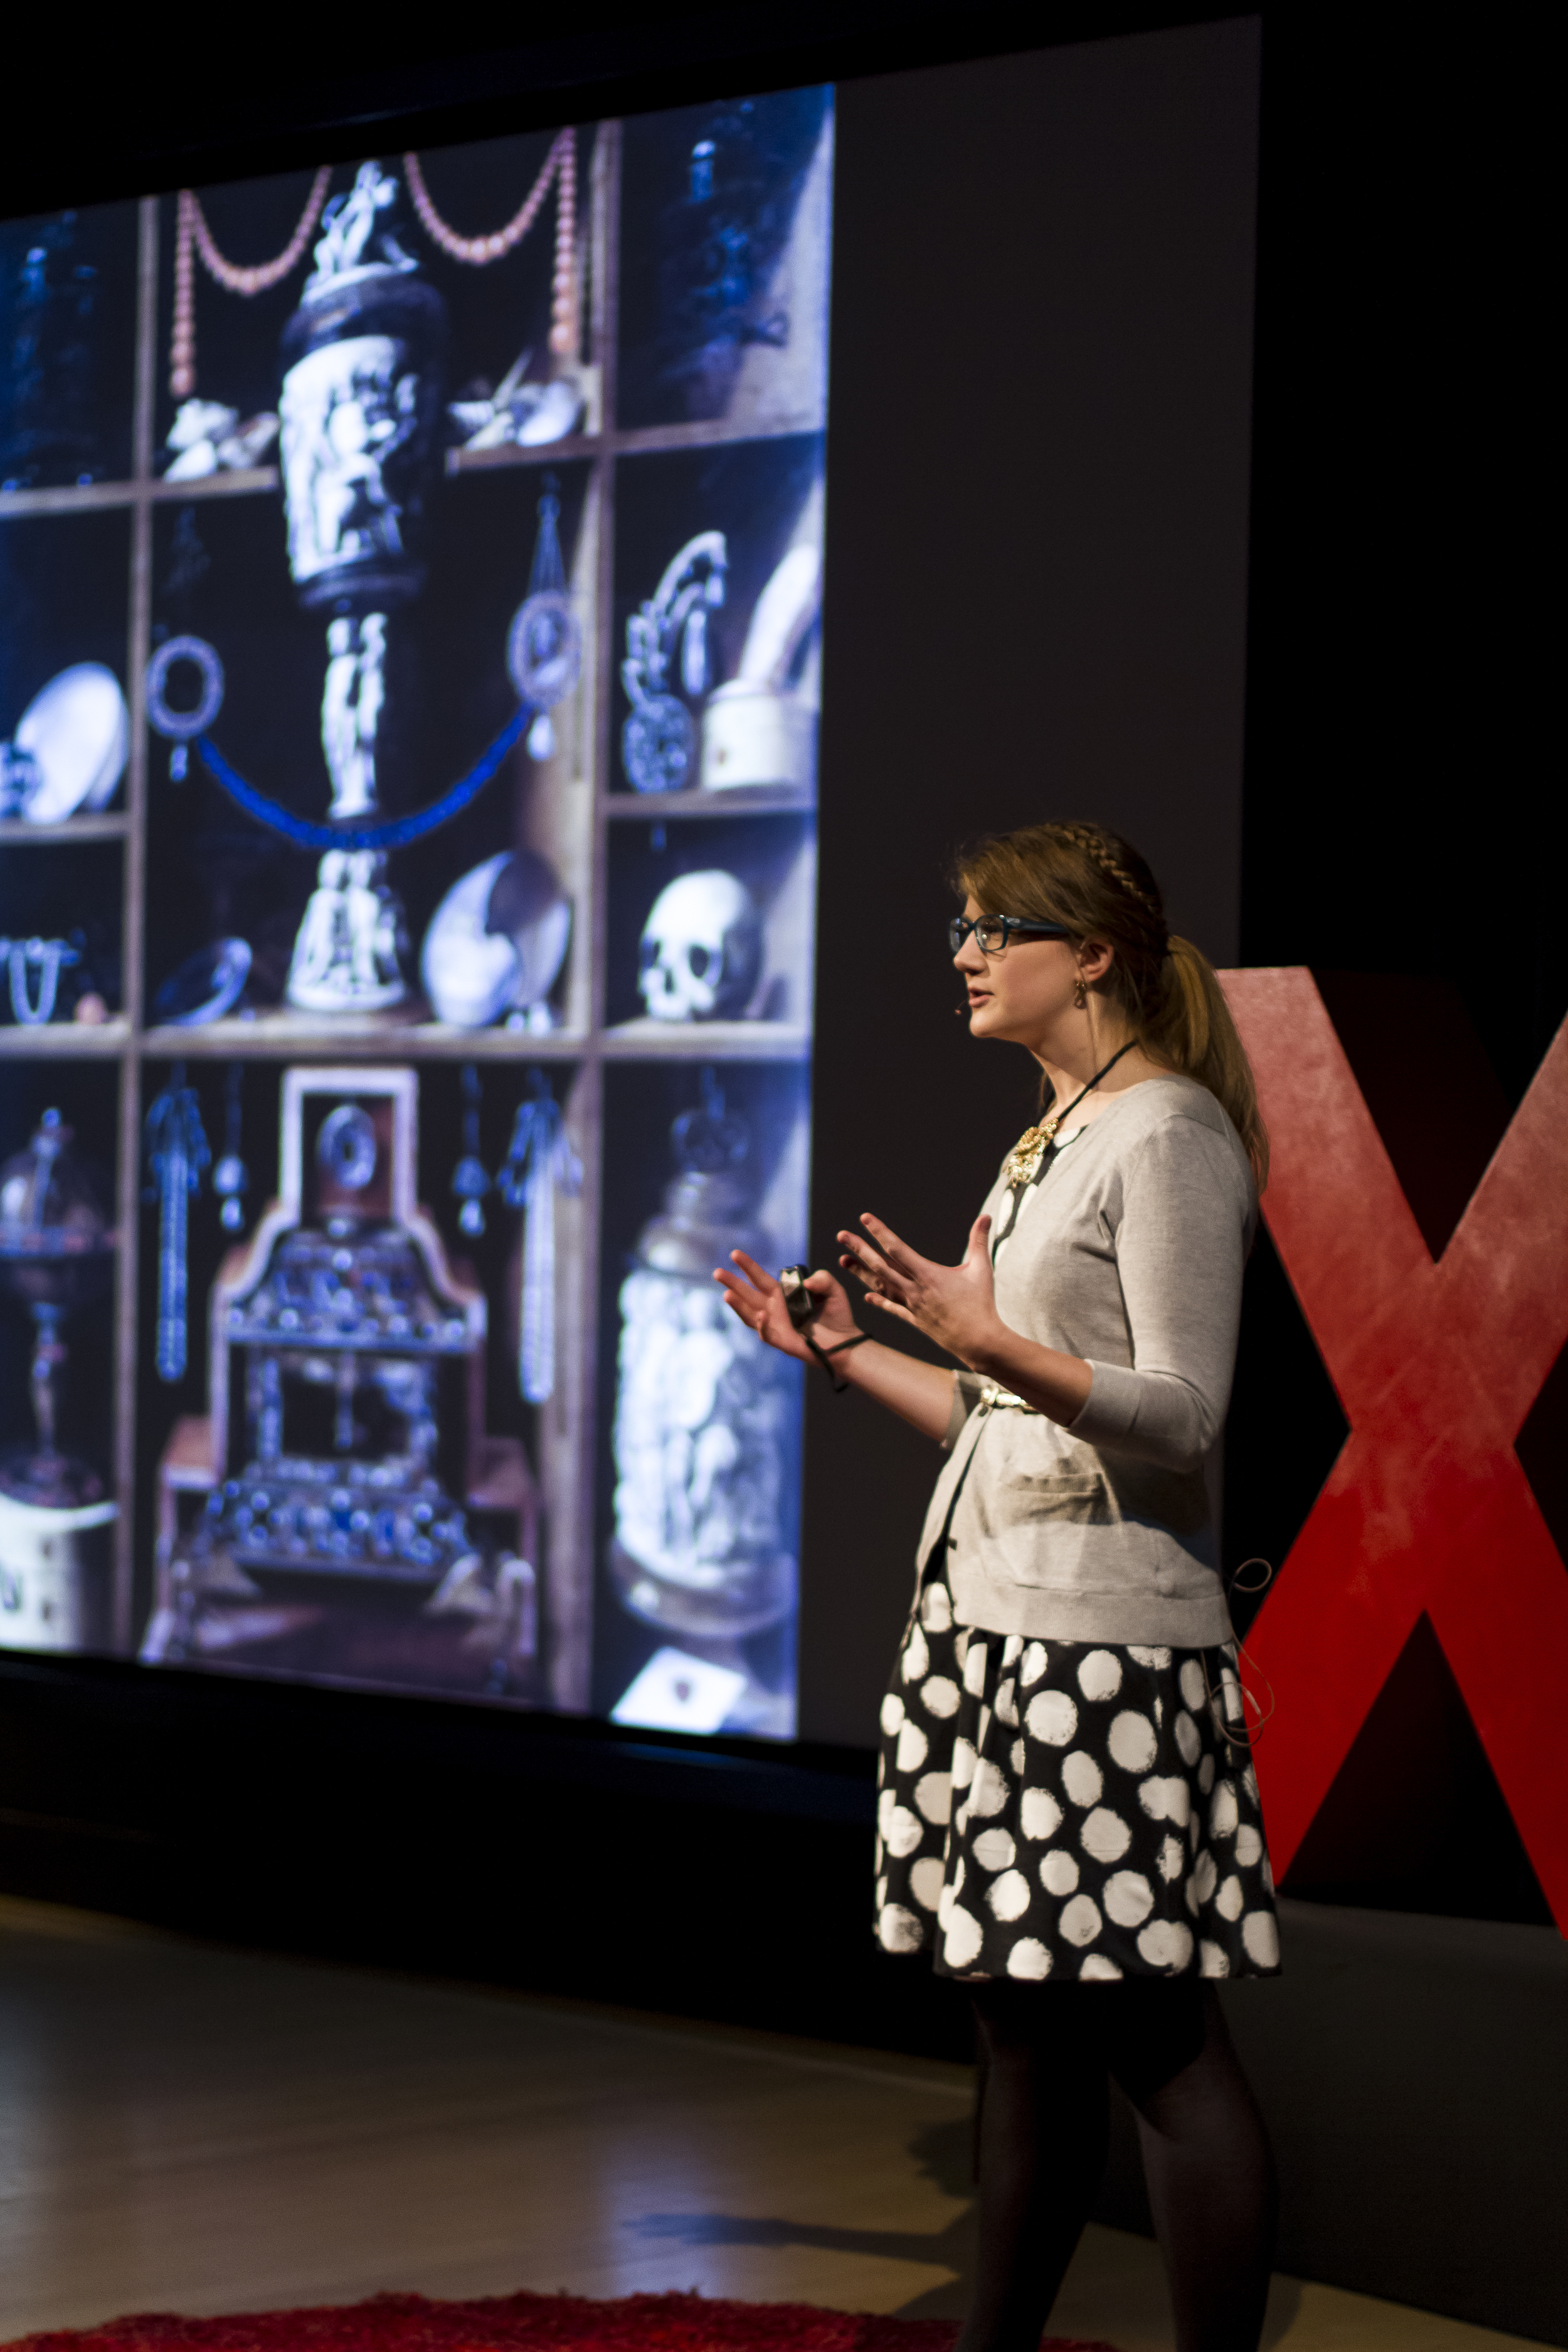 Emily Graslie speaking about the collections of the Field Museum on the TEDxSacramento stage.